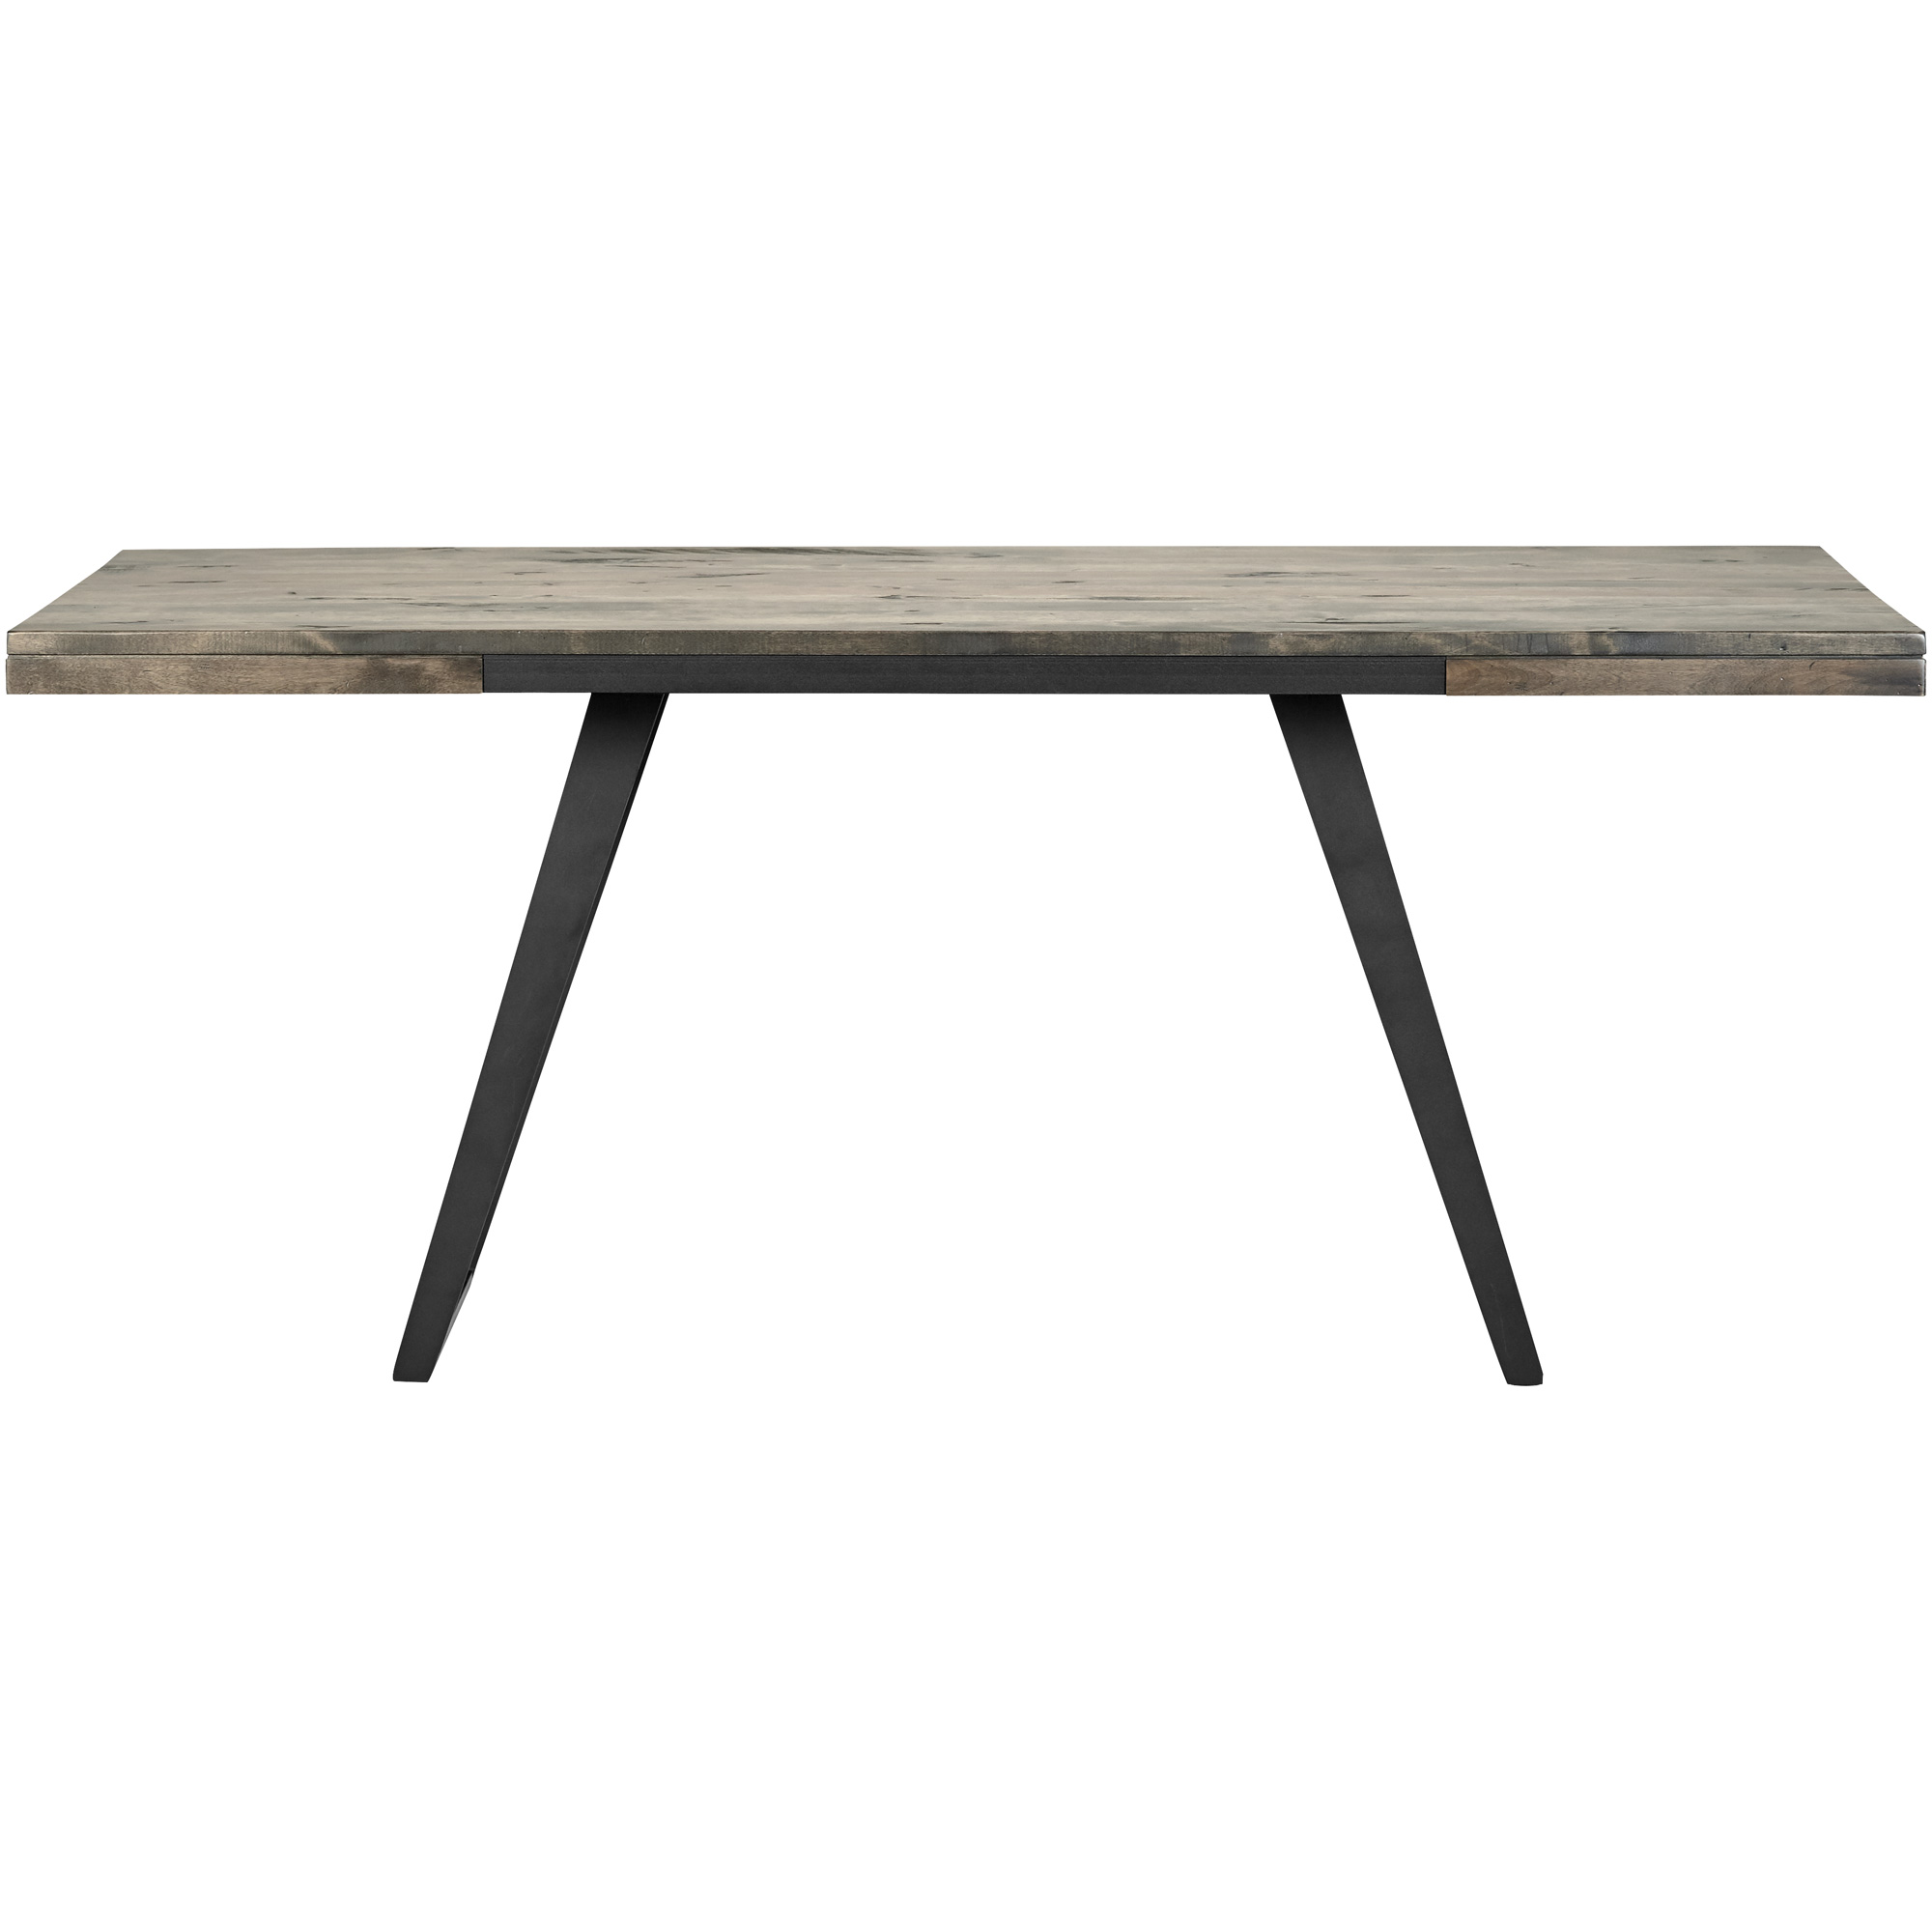 Canadel Furniture | Uptown Mist Gray Dining Table